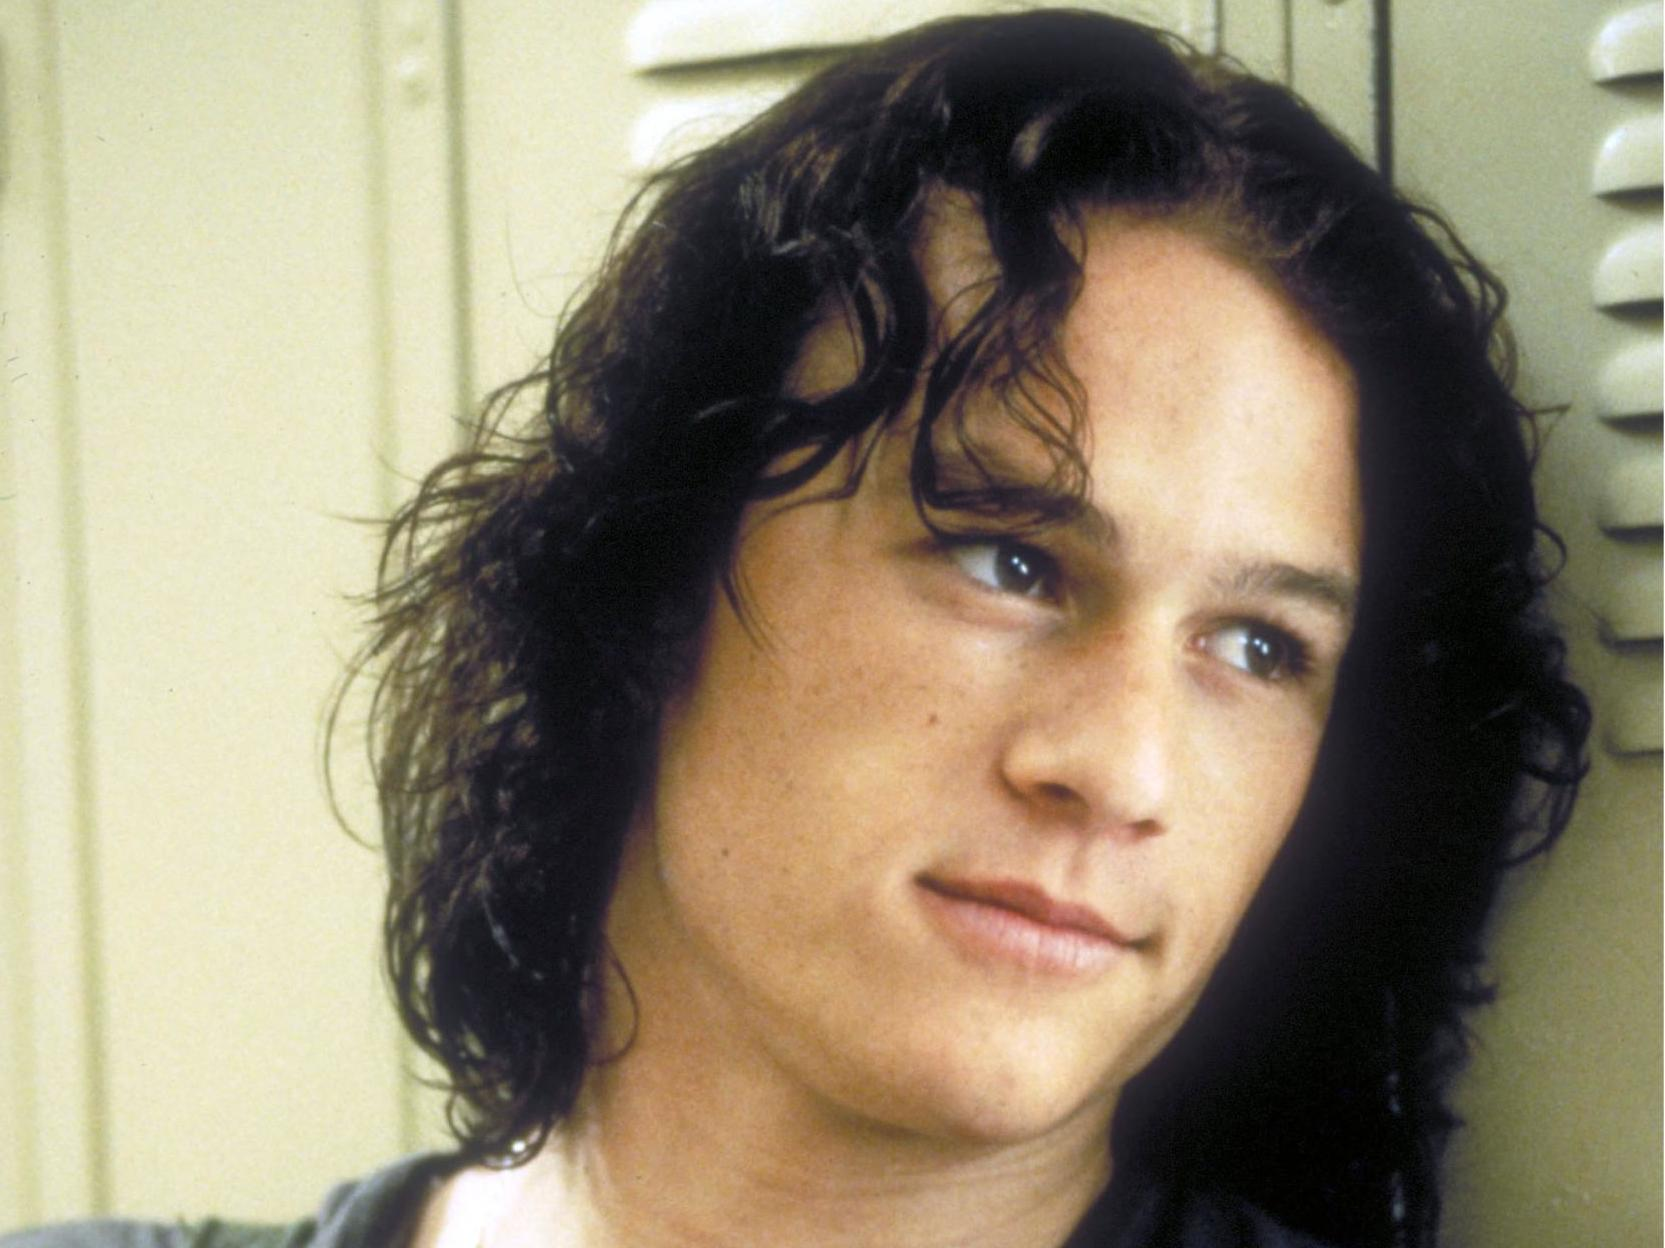 99d911a4 Heath Ledger - latest news, breaking stories and comment - The ...